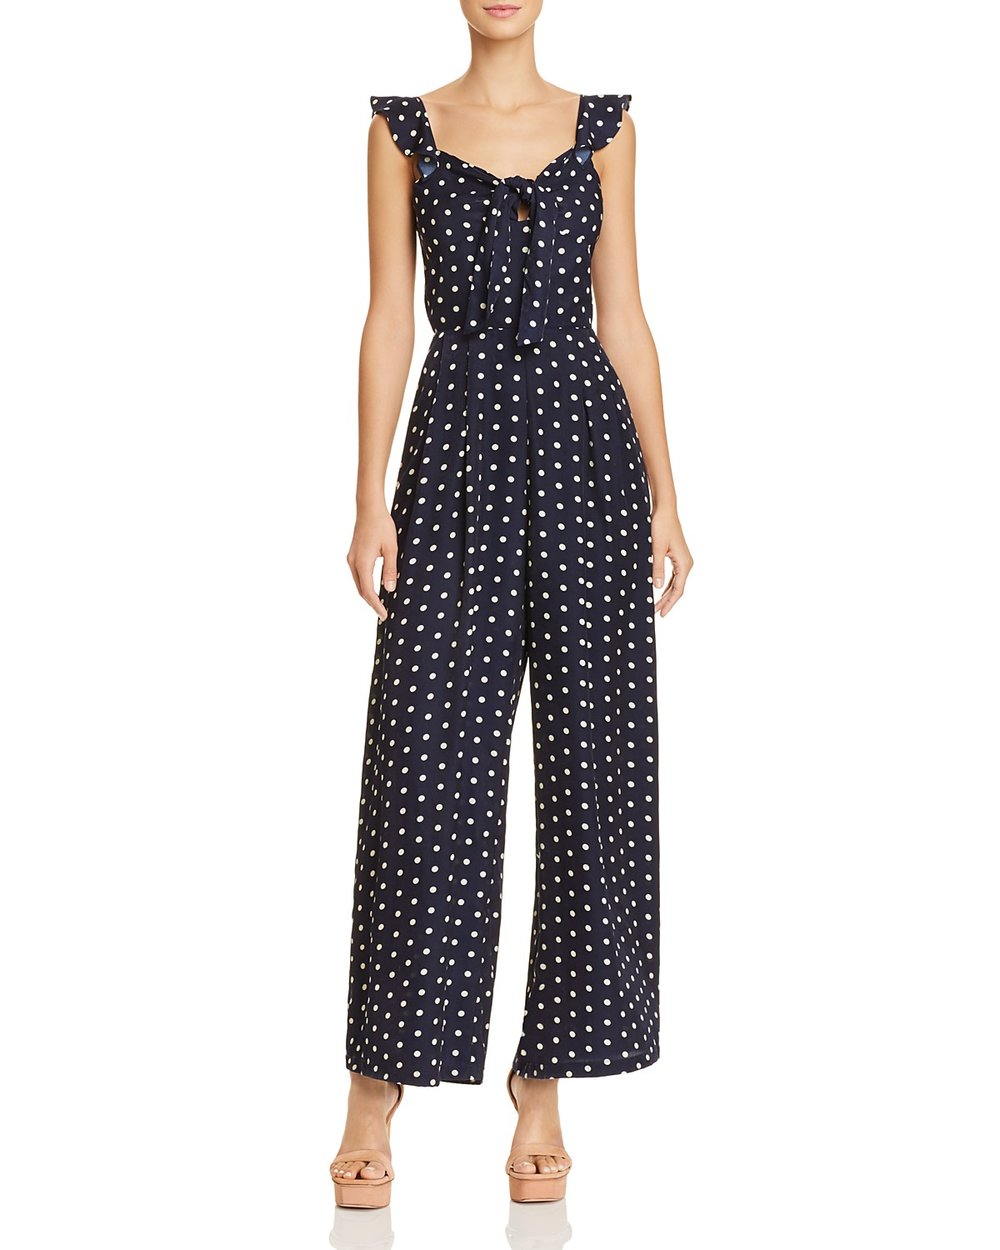 Lucy Paris Polka Dot Wide Leg Jumpsuit.jpeg